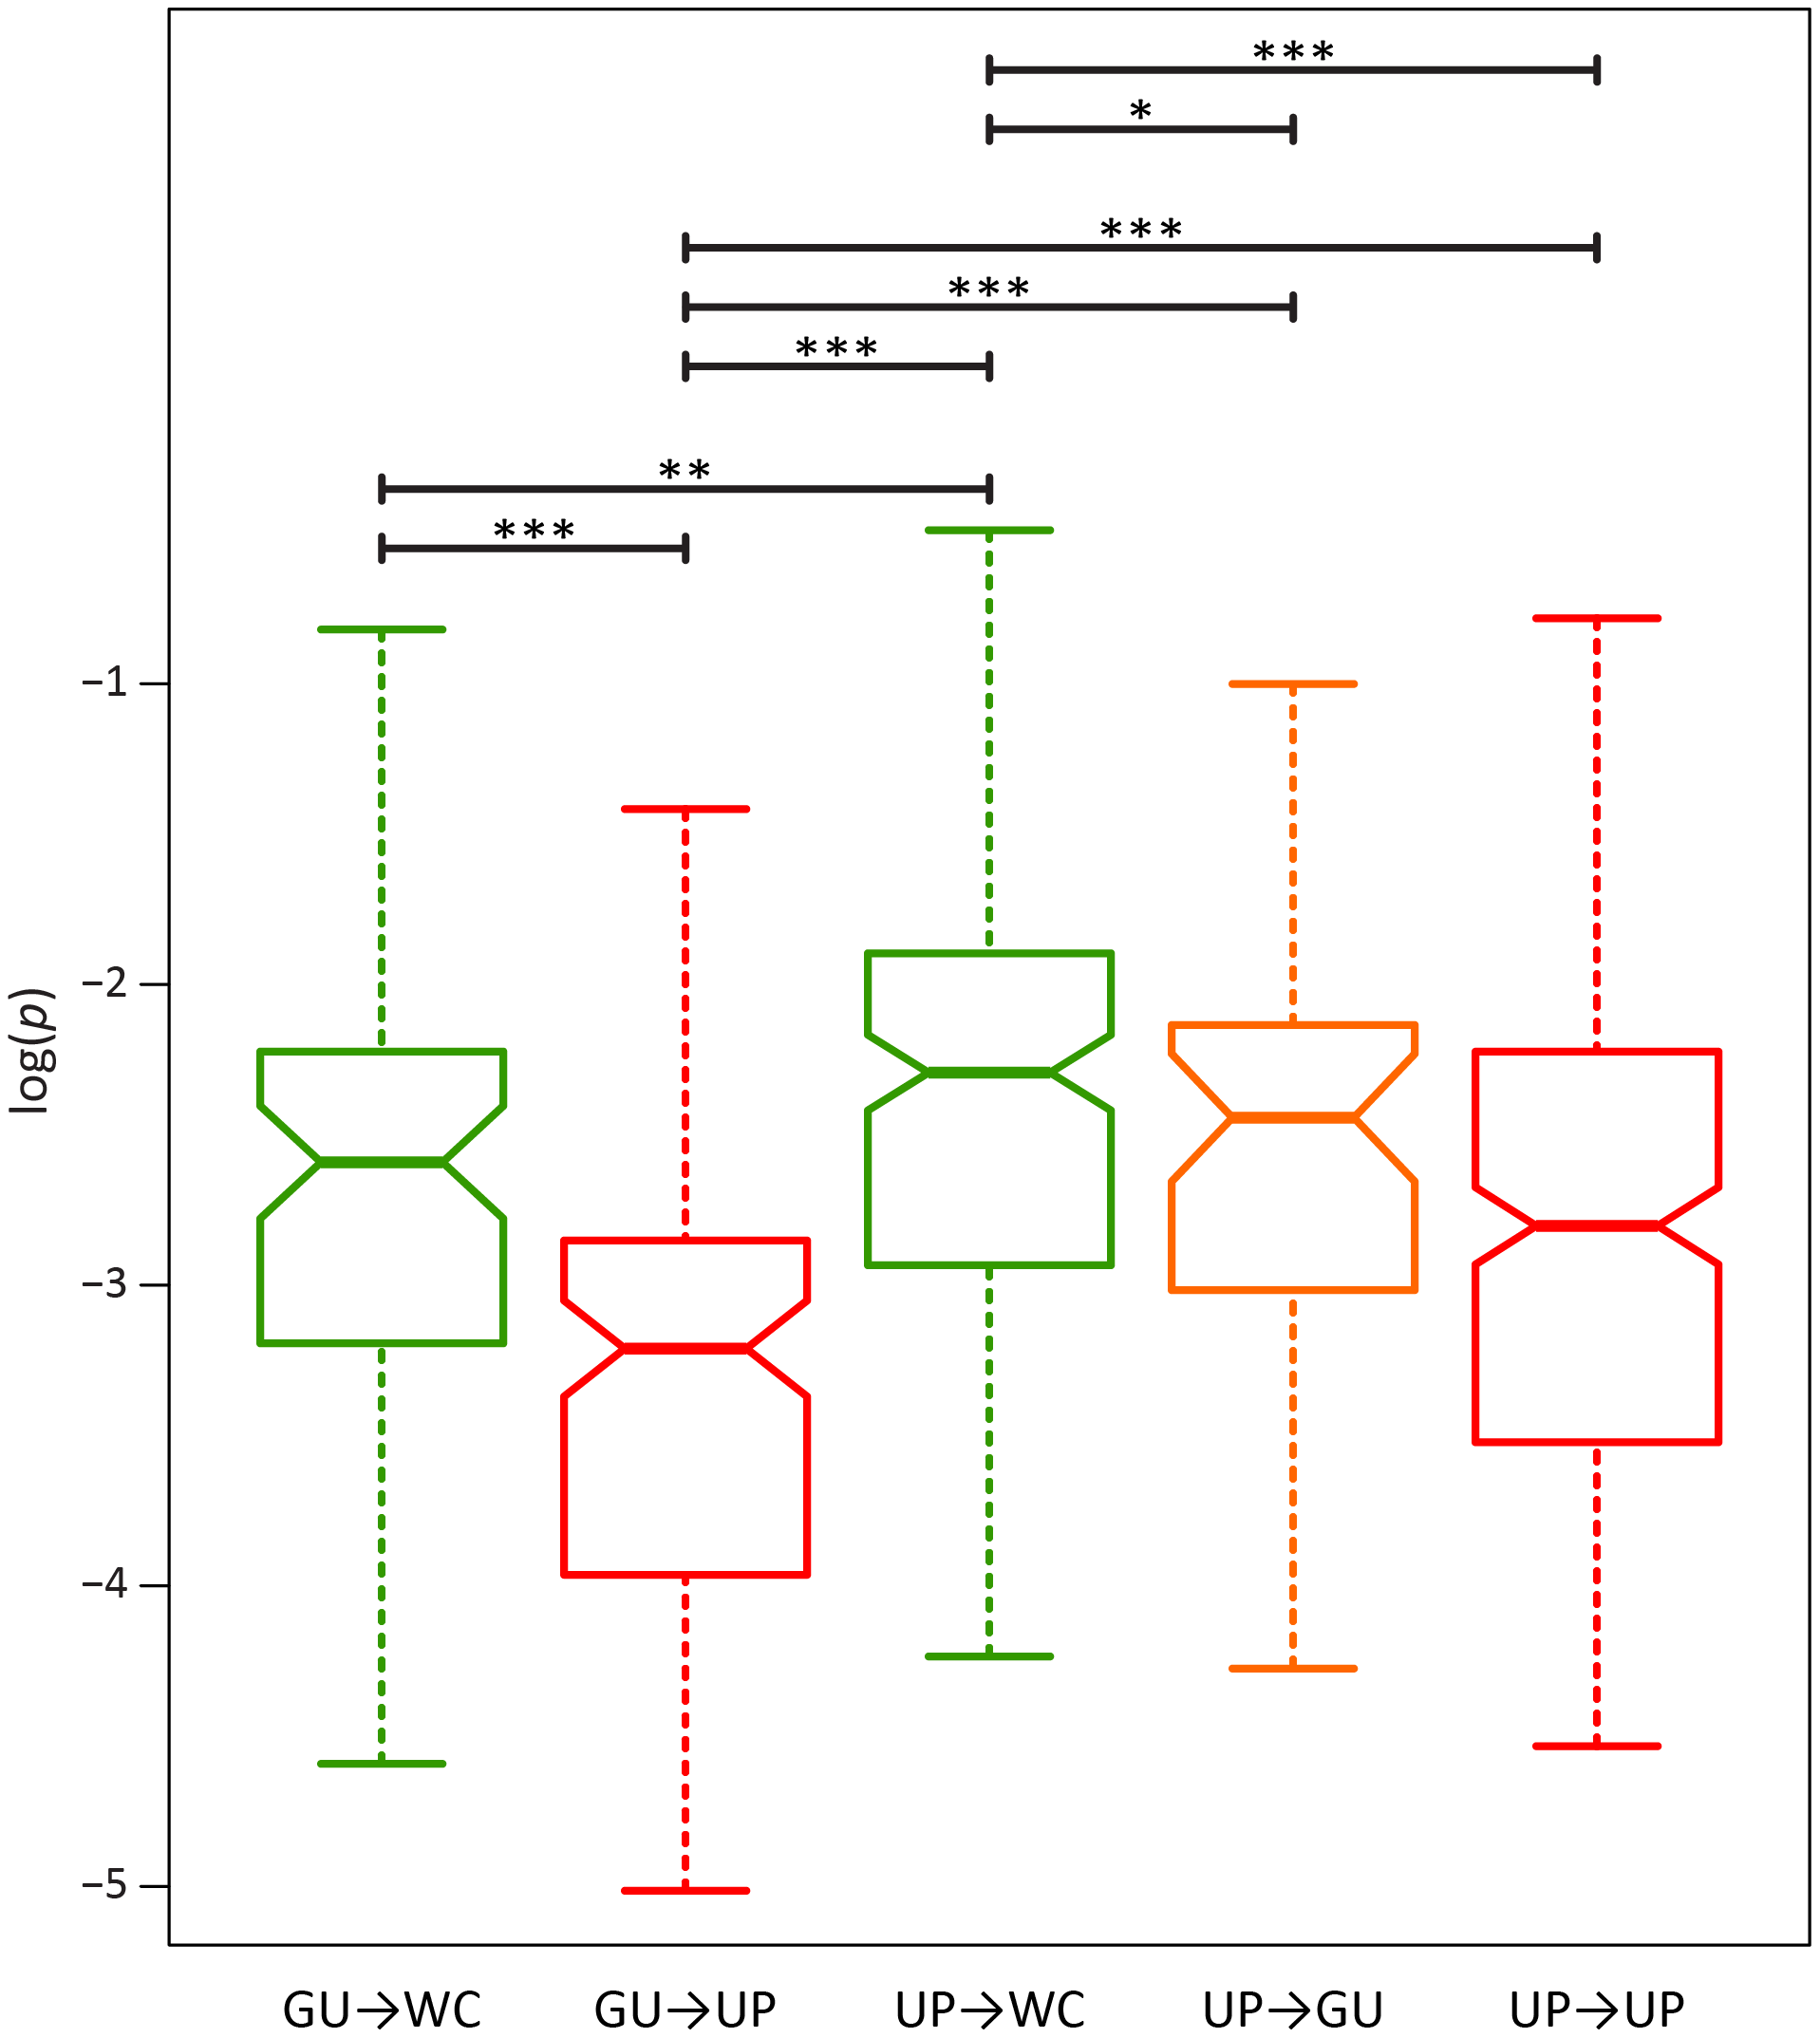 Intra-population frequencies of second-site WC replacement polymorphisms in the HIV-1 genome.